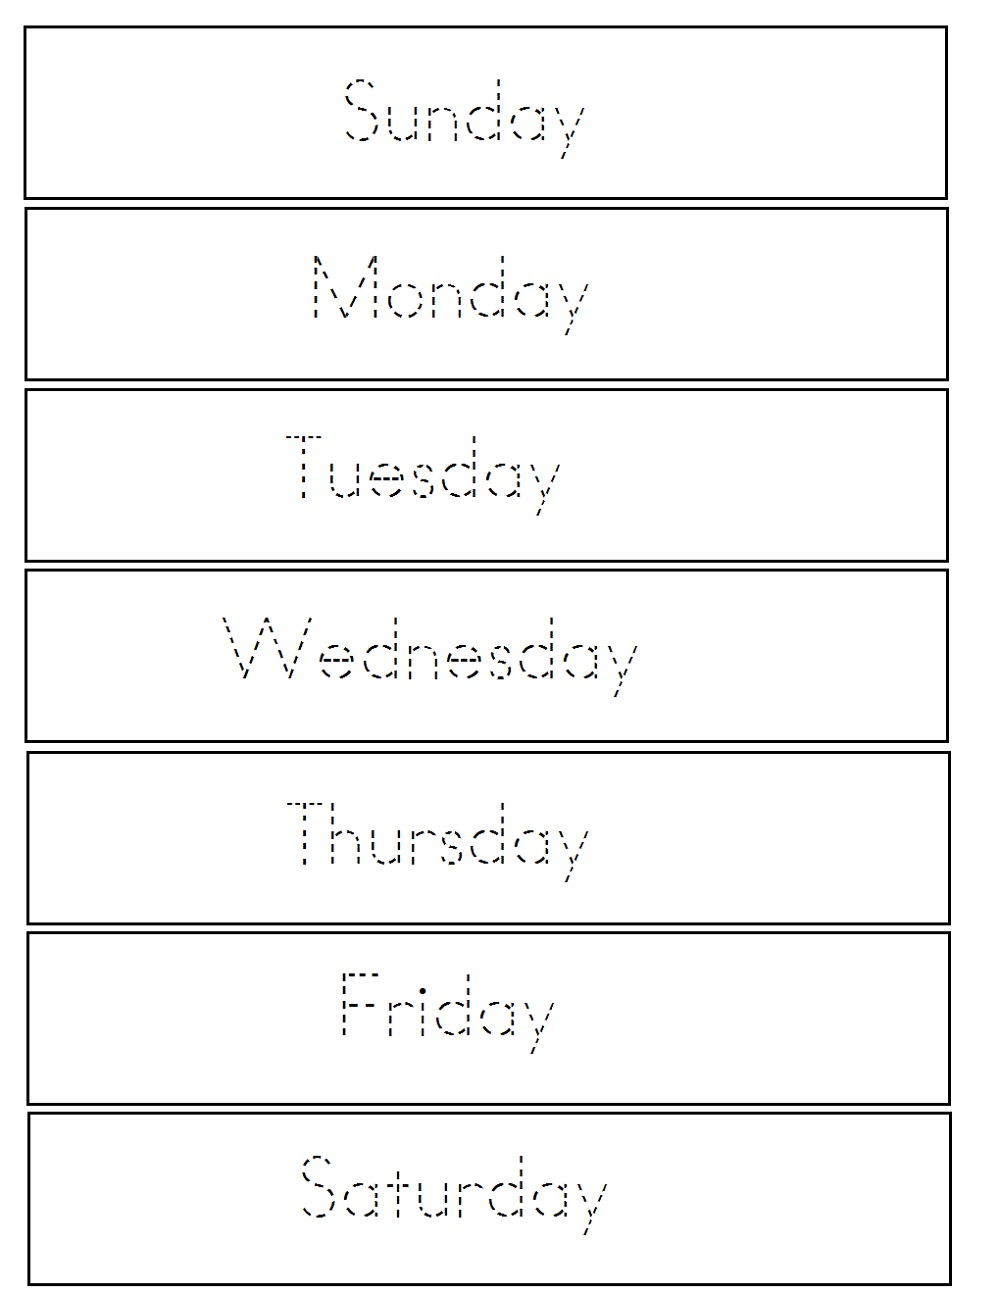 days-of-the-week-activity-printable